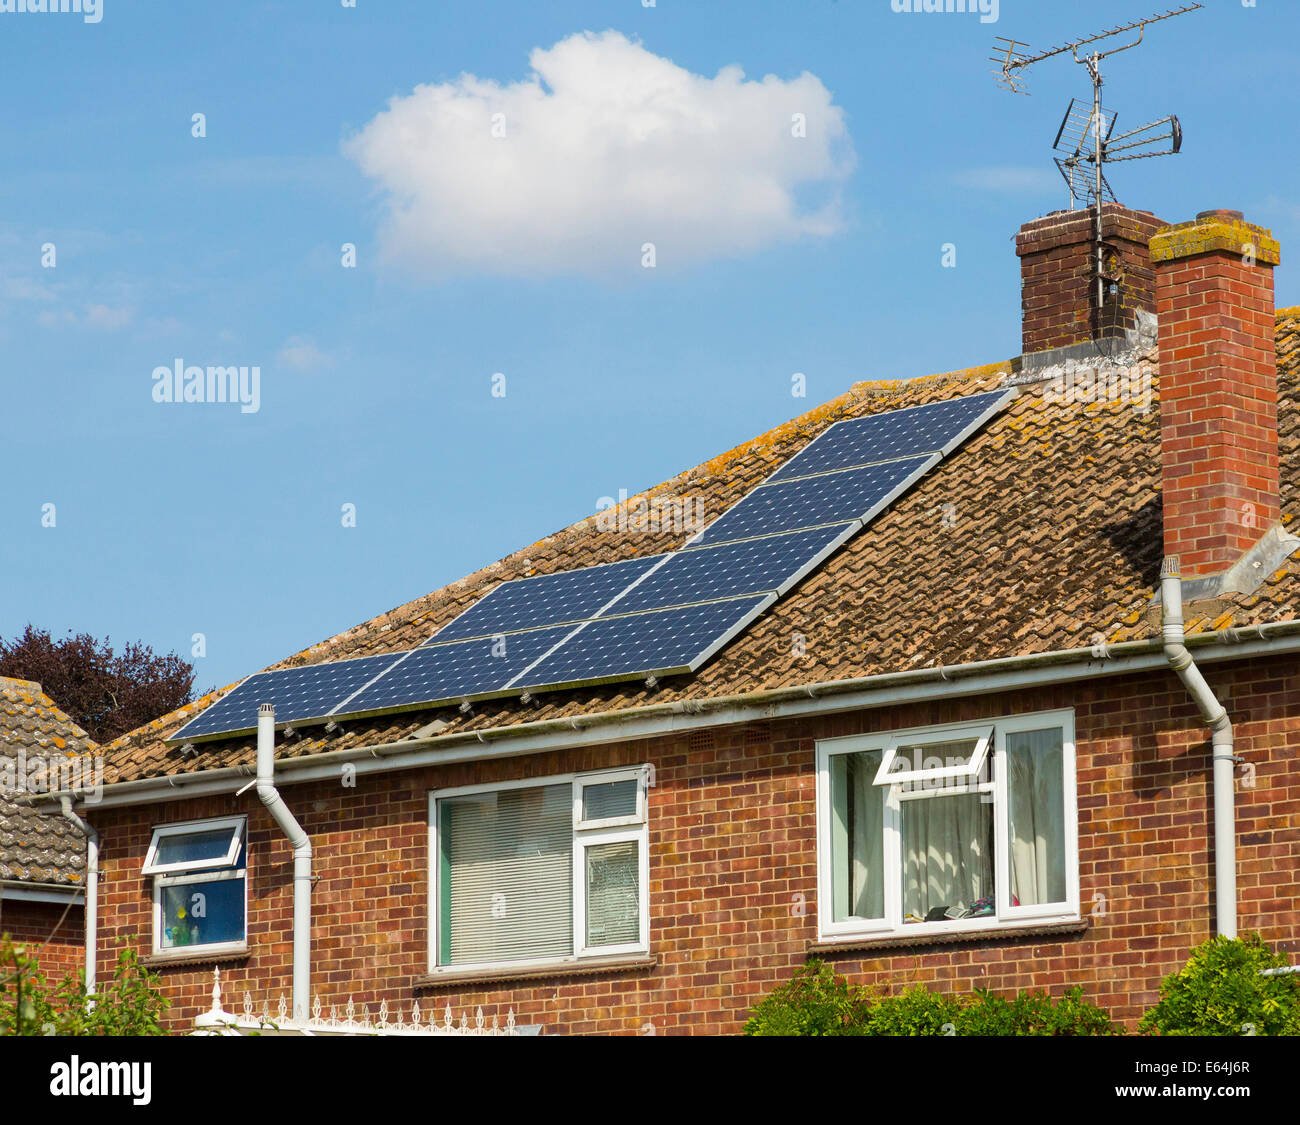 photovoltaic solar panels in the UK - Stock Image